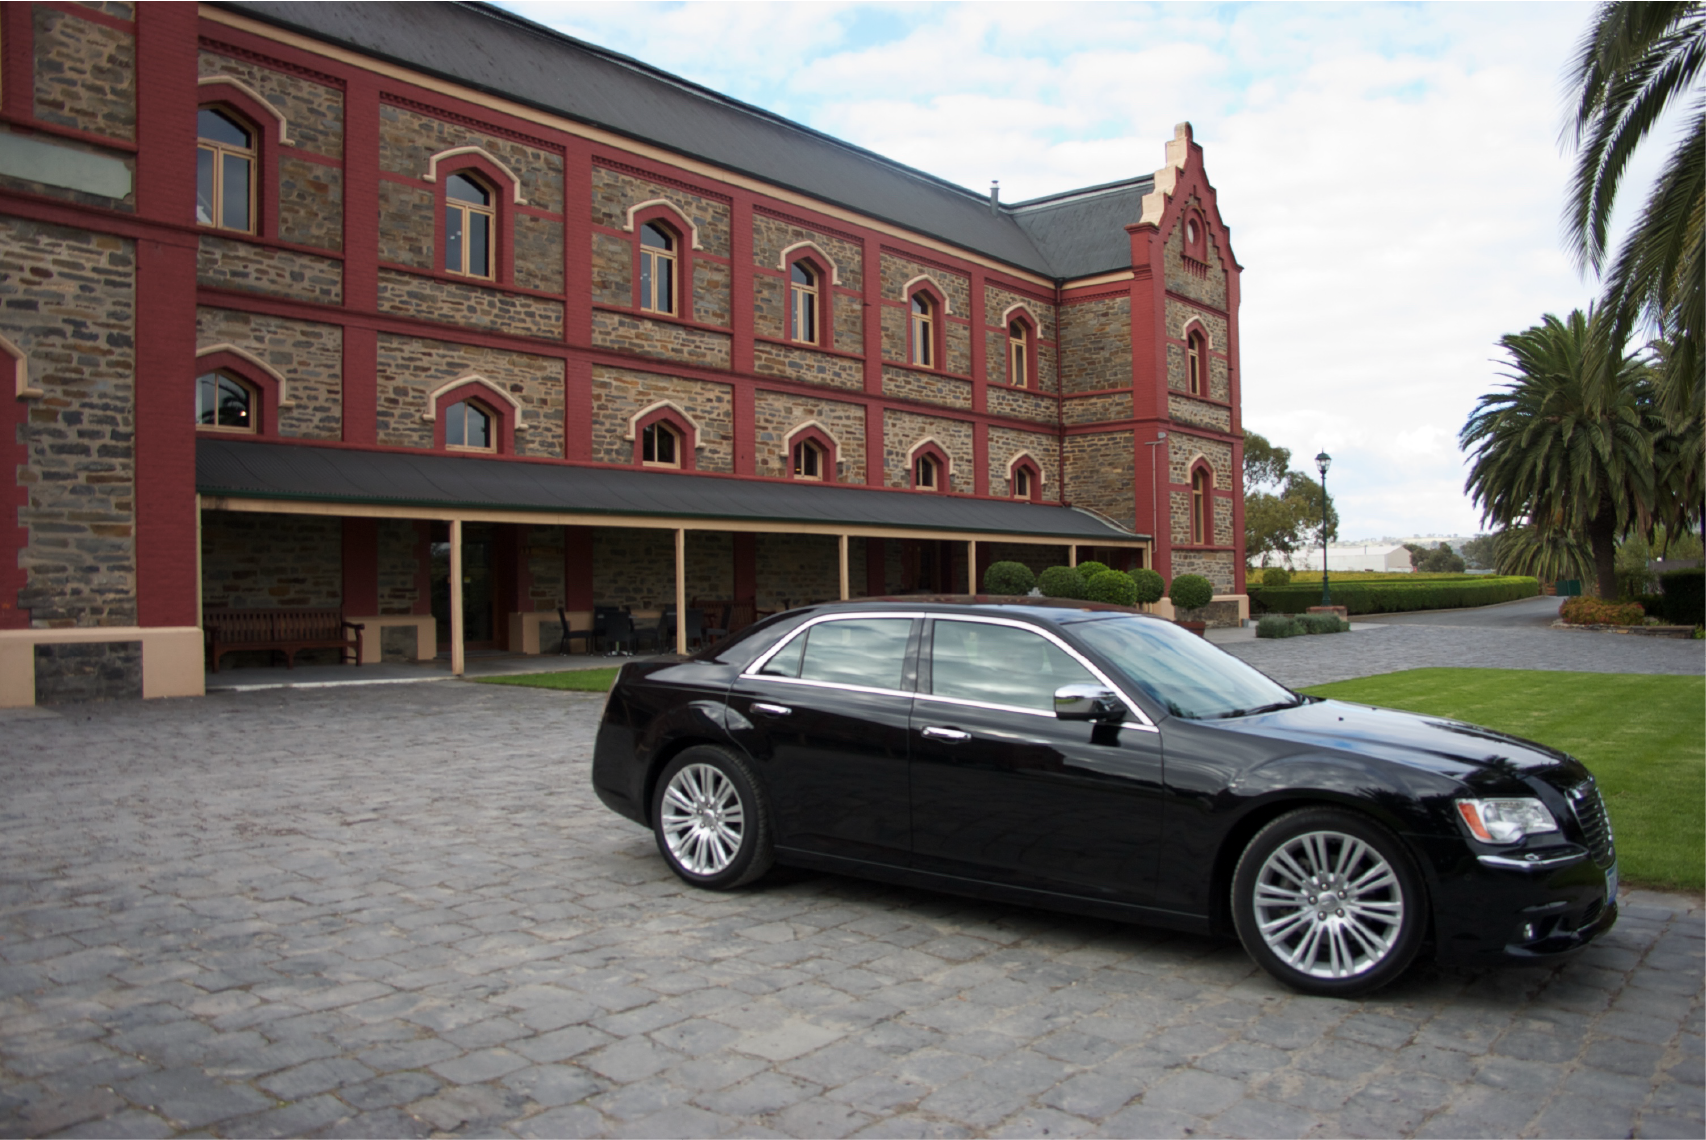 Chateau Tanunda winery